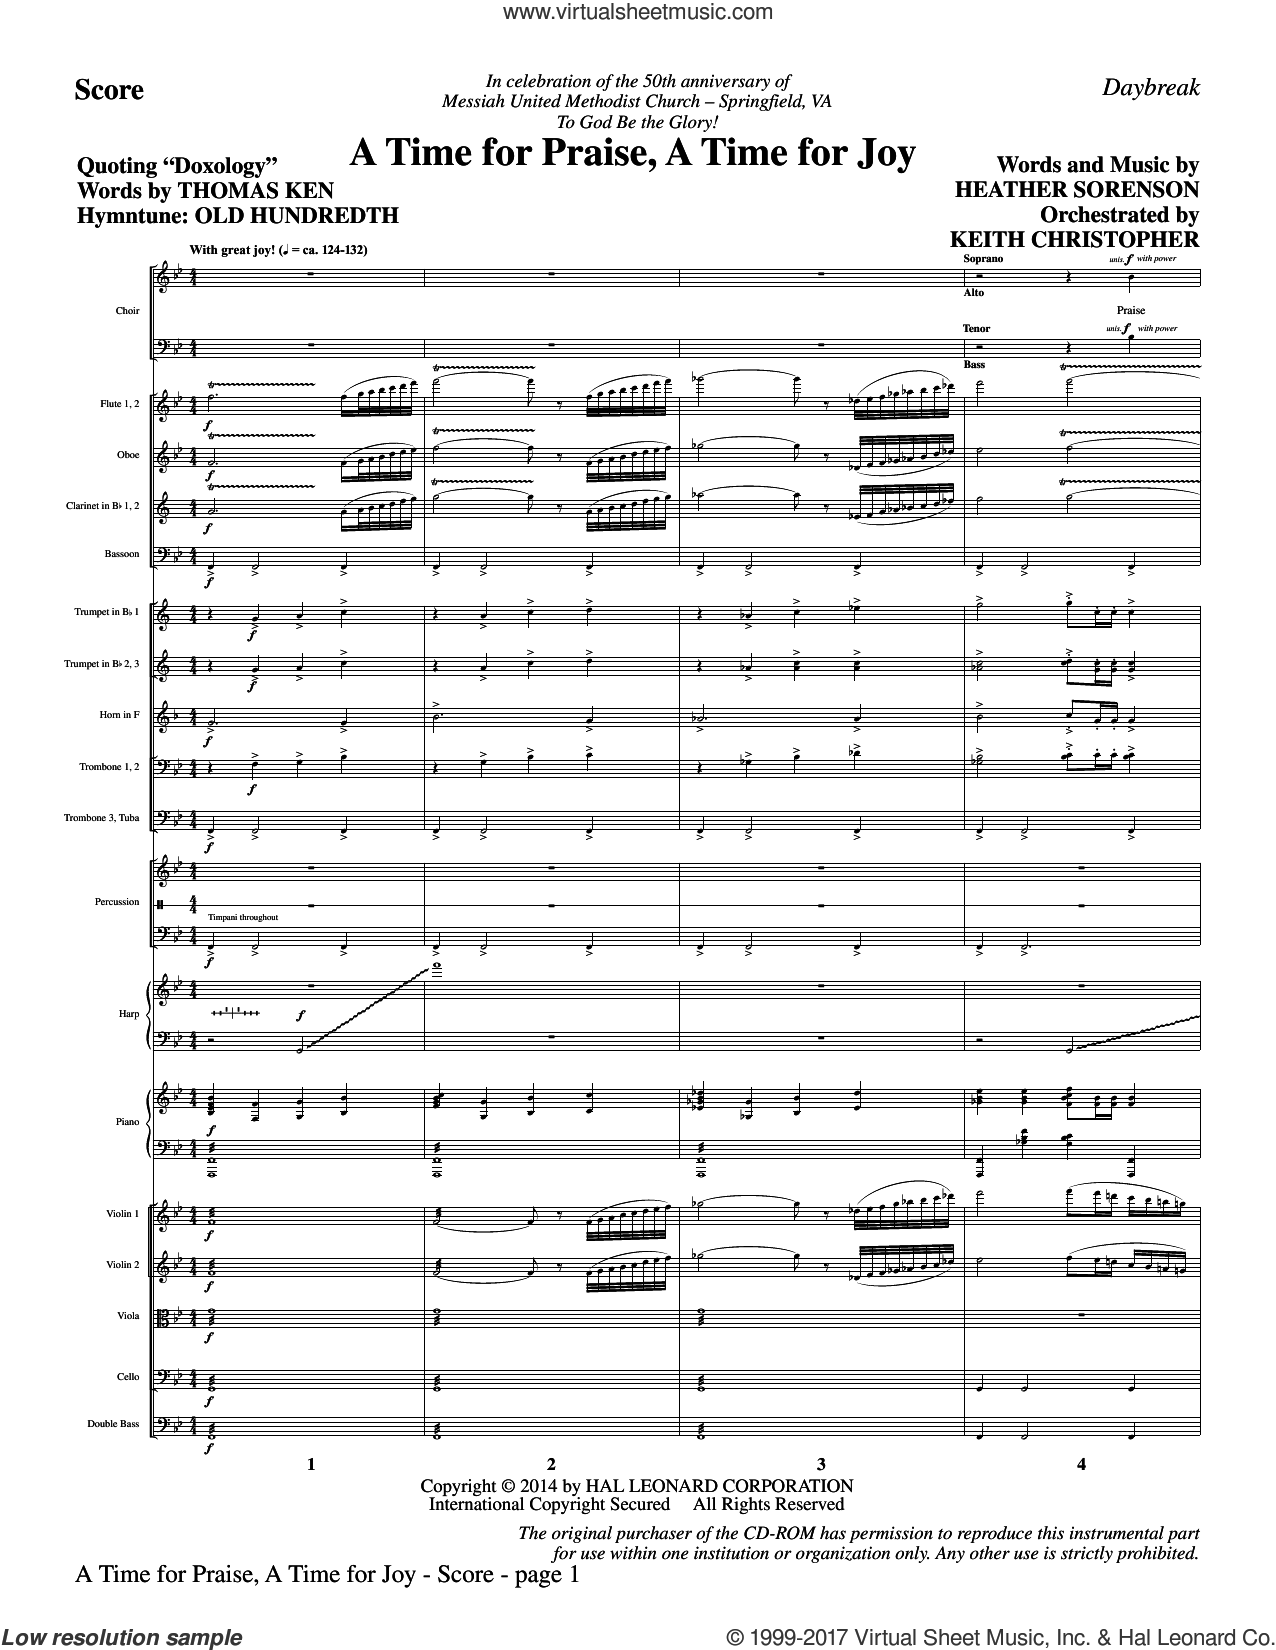 A Time for Praise, A Time for Joy (COMPLETE) sheet music for orchestra/band by Heather Sorenson, Louis Bourgeois and Thomas Ken, intermediate. Score Image Preview.